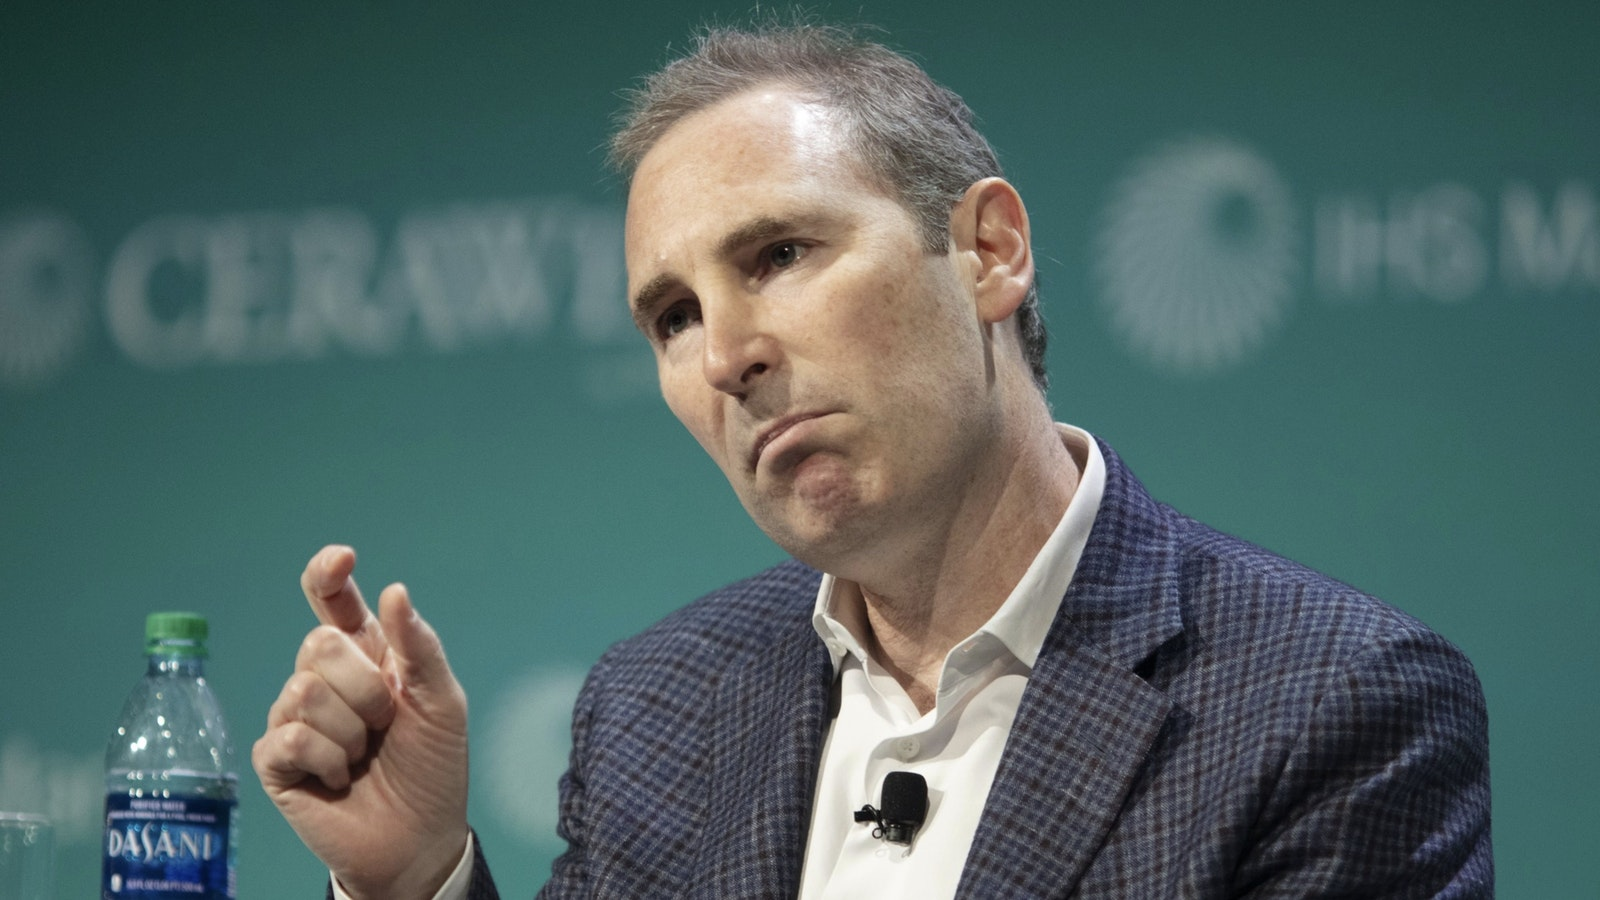 AWS CEO Andy Jassy. Photo by Bloomberg